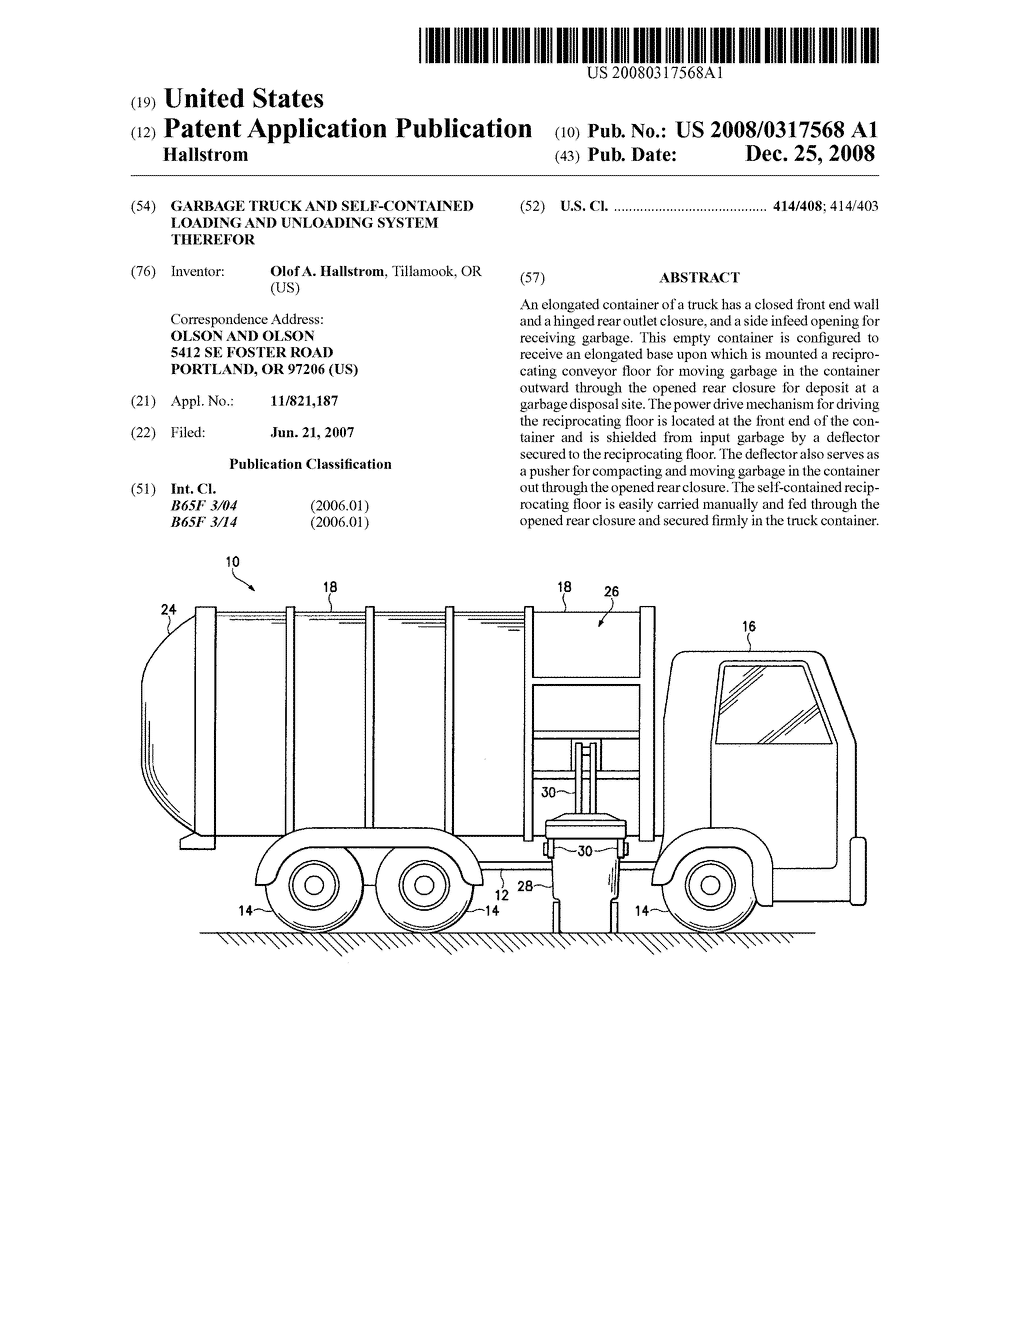 garbage truck and self-contained loading and unloading system therefor -  diagram, schematic, and image 01